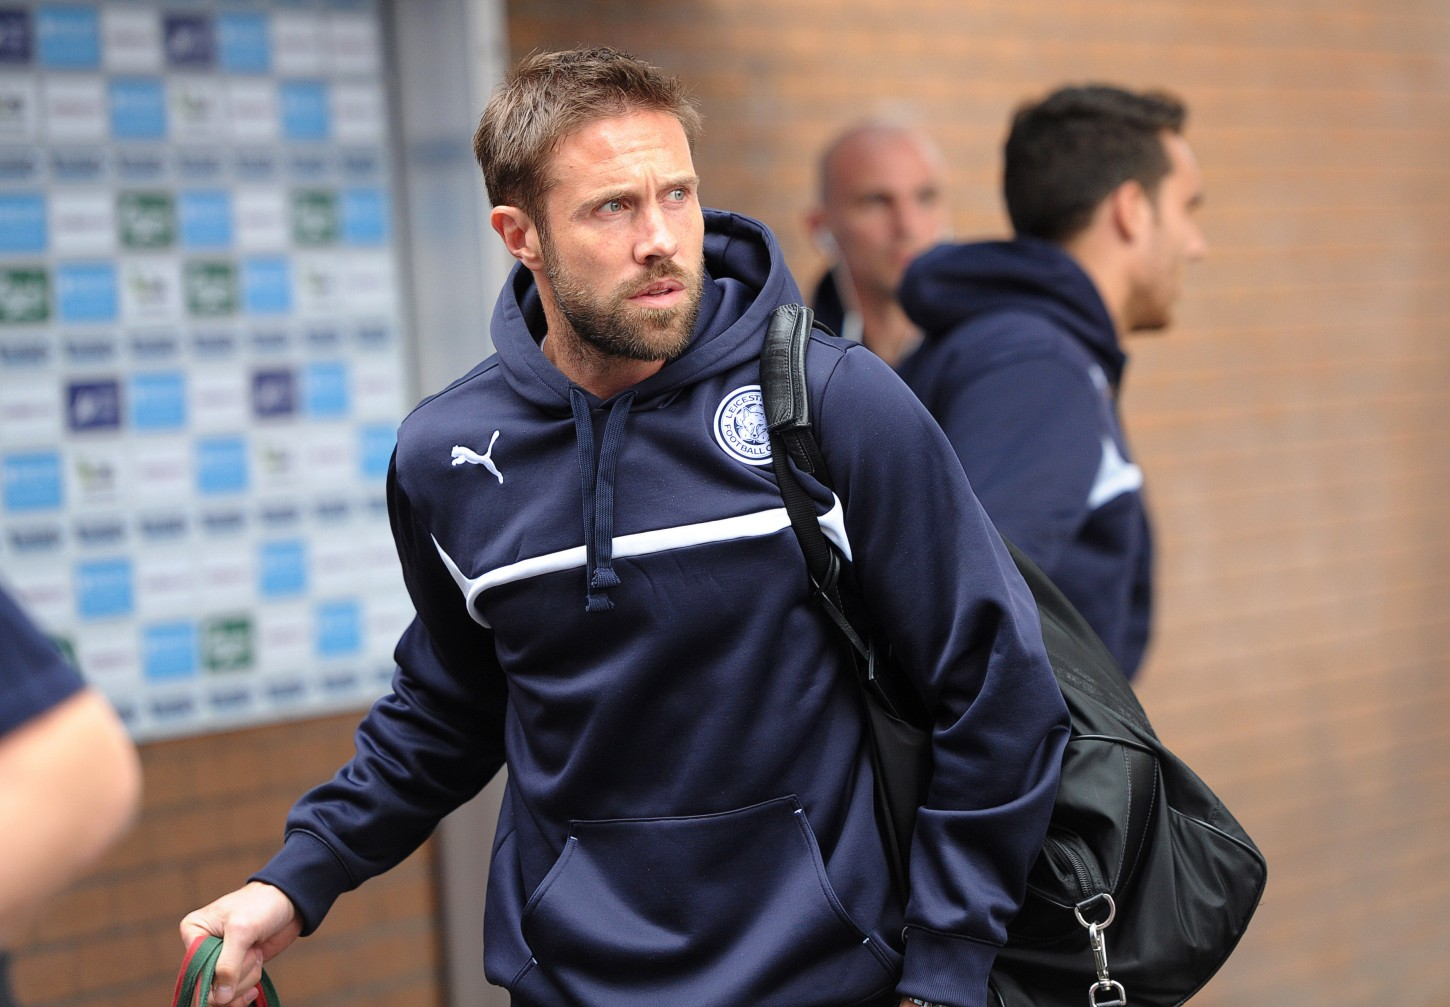 Football - Burnley v Leicester City - Barclays Premier League - Turf Moor - 25/4/15 Leicester City's Matthew Upson arrives before the game  Action Images / Paul Burrows Livepic